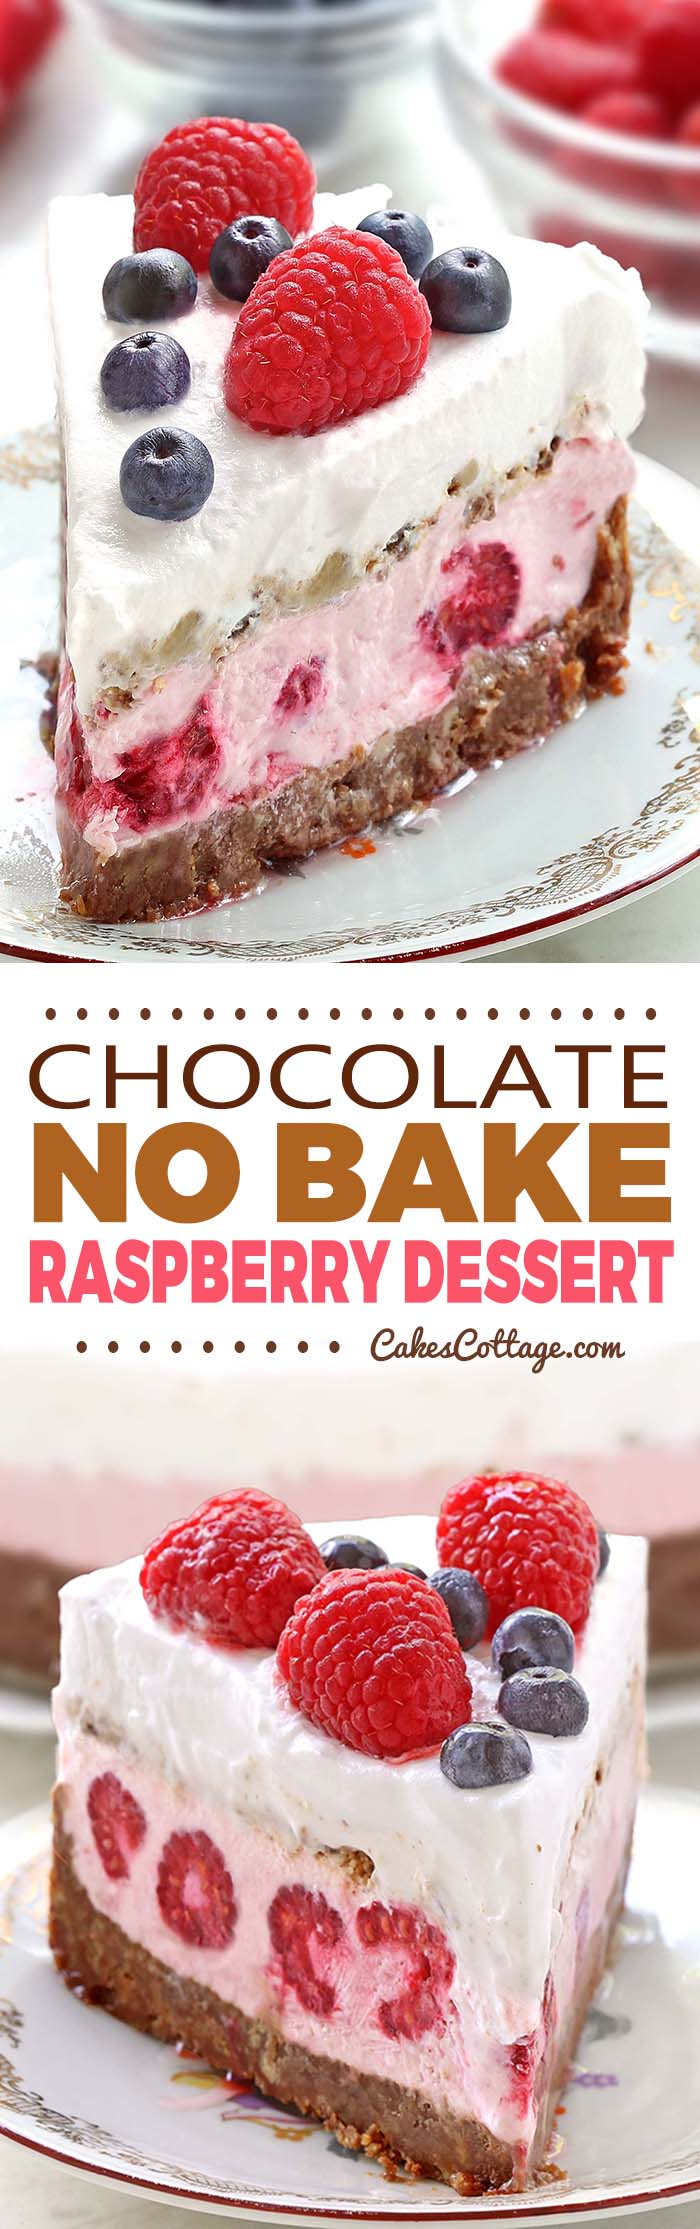 Looking for a quick, easy and refreshing Summer dessert recipe? Try out delicious No Bake Chocolate Raspberry Dessert !